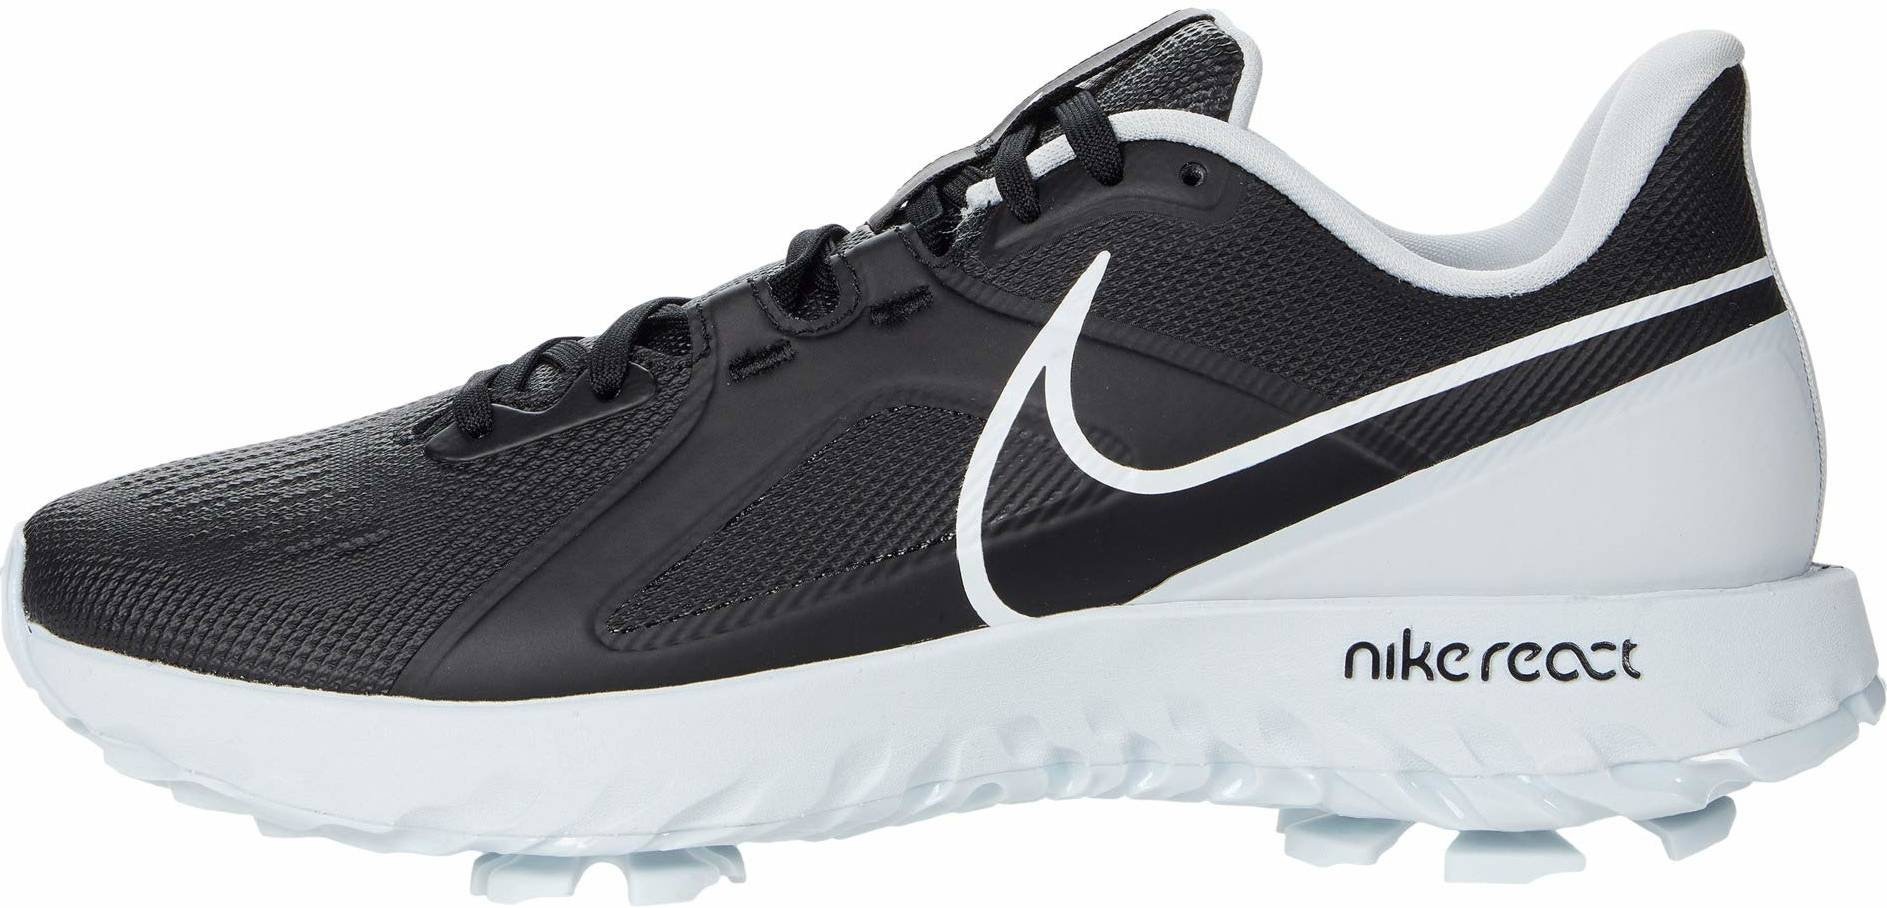 Nike React Infinity Pro - Deals ($90), Facts, Reviews (2021 ...